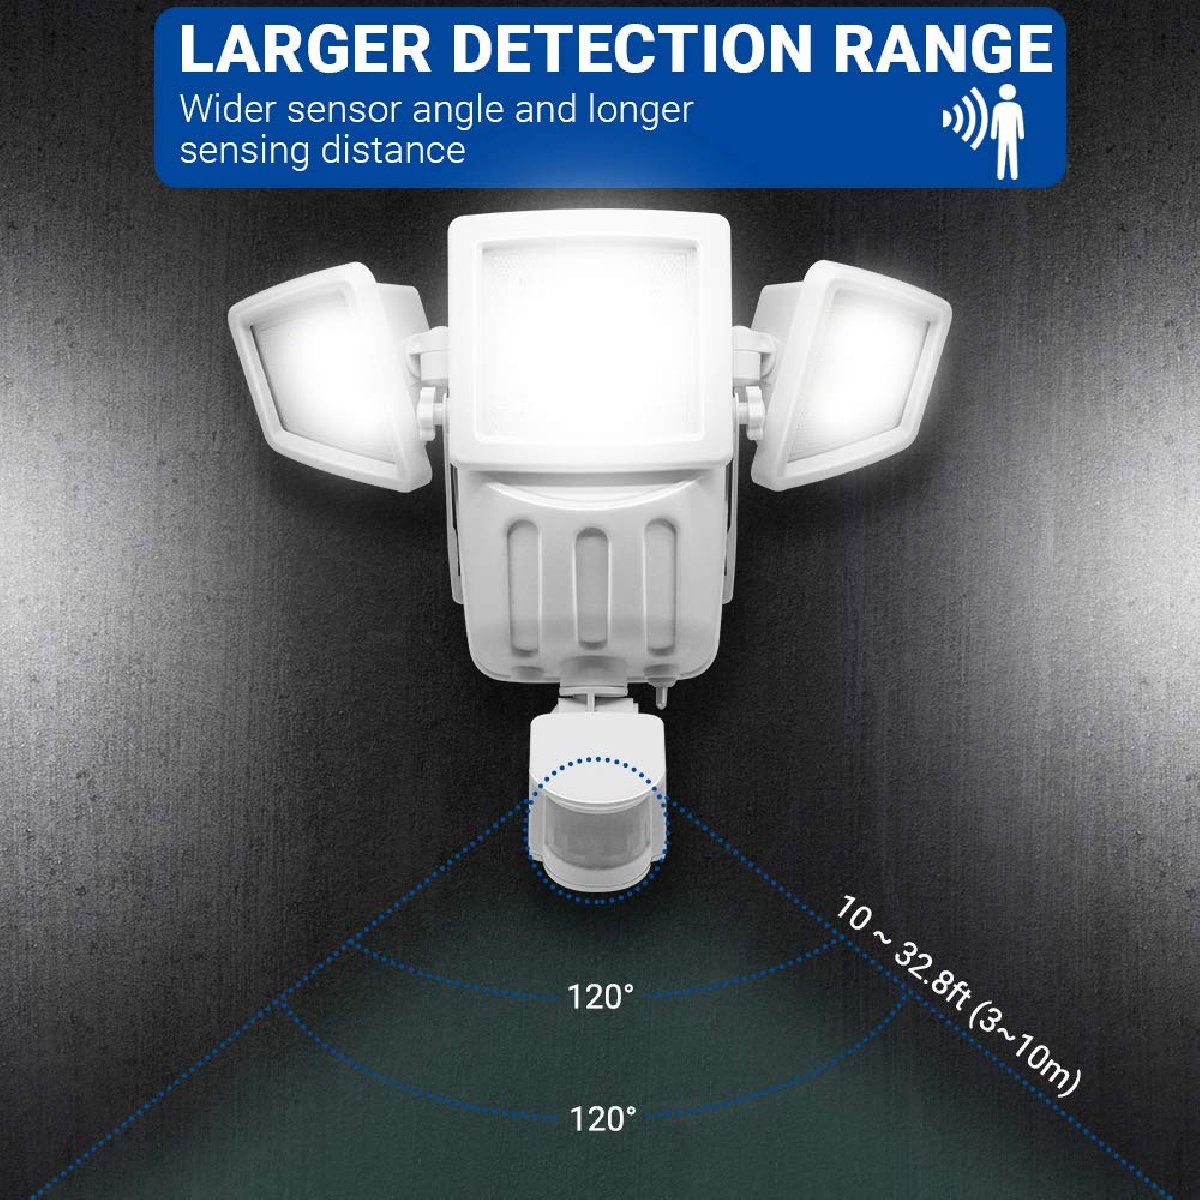 Head Motions Offer Better Way To Detect >> Triple Head Solar Motion Detection Light For Sale In Half Way Tree